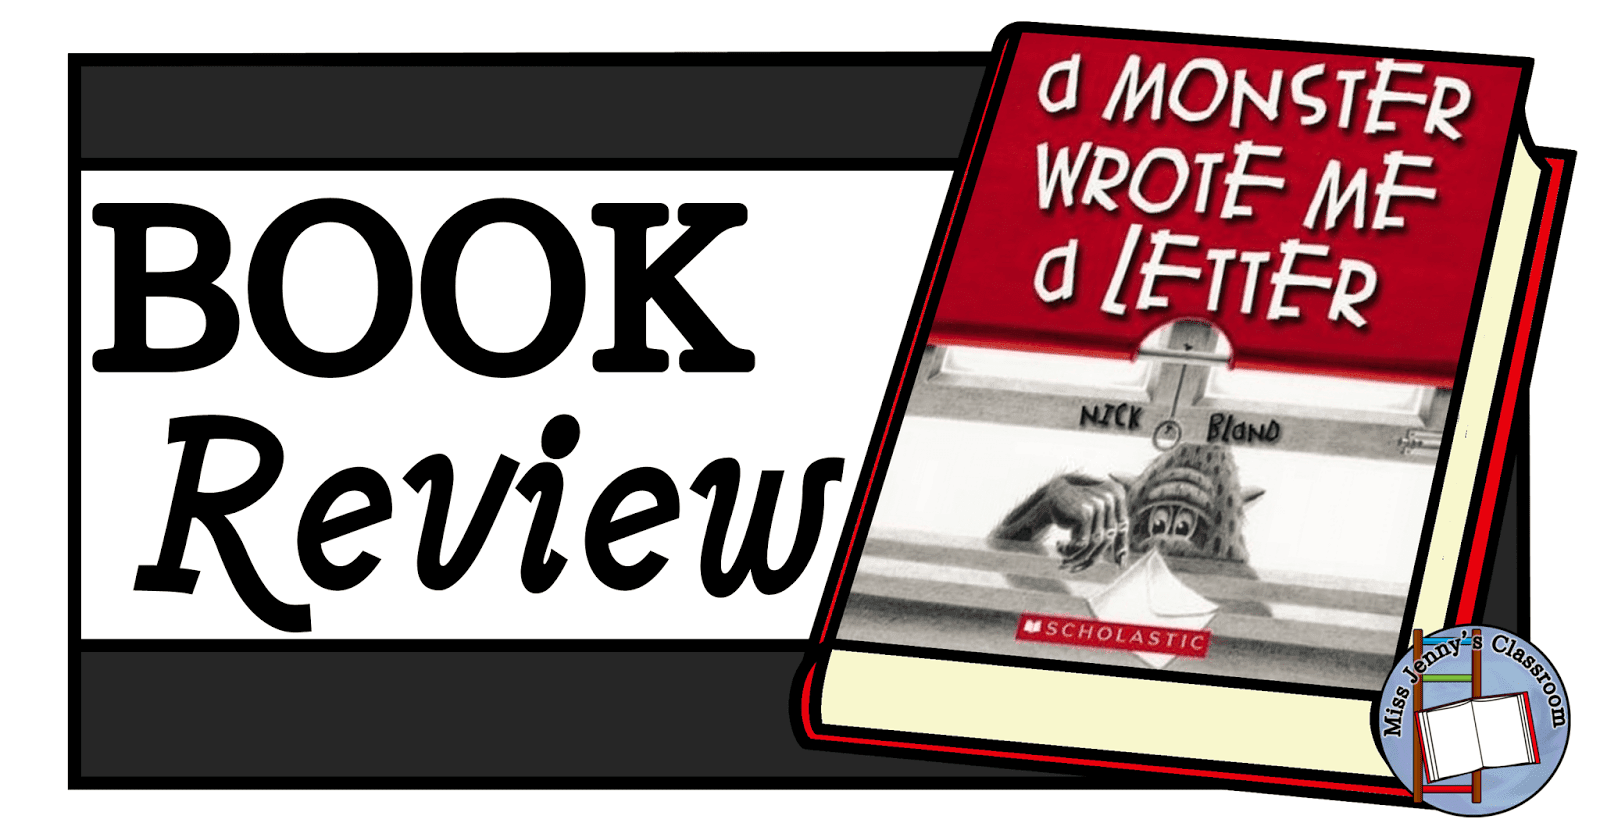 A Monster Wrote Me A Letter: Book Review